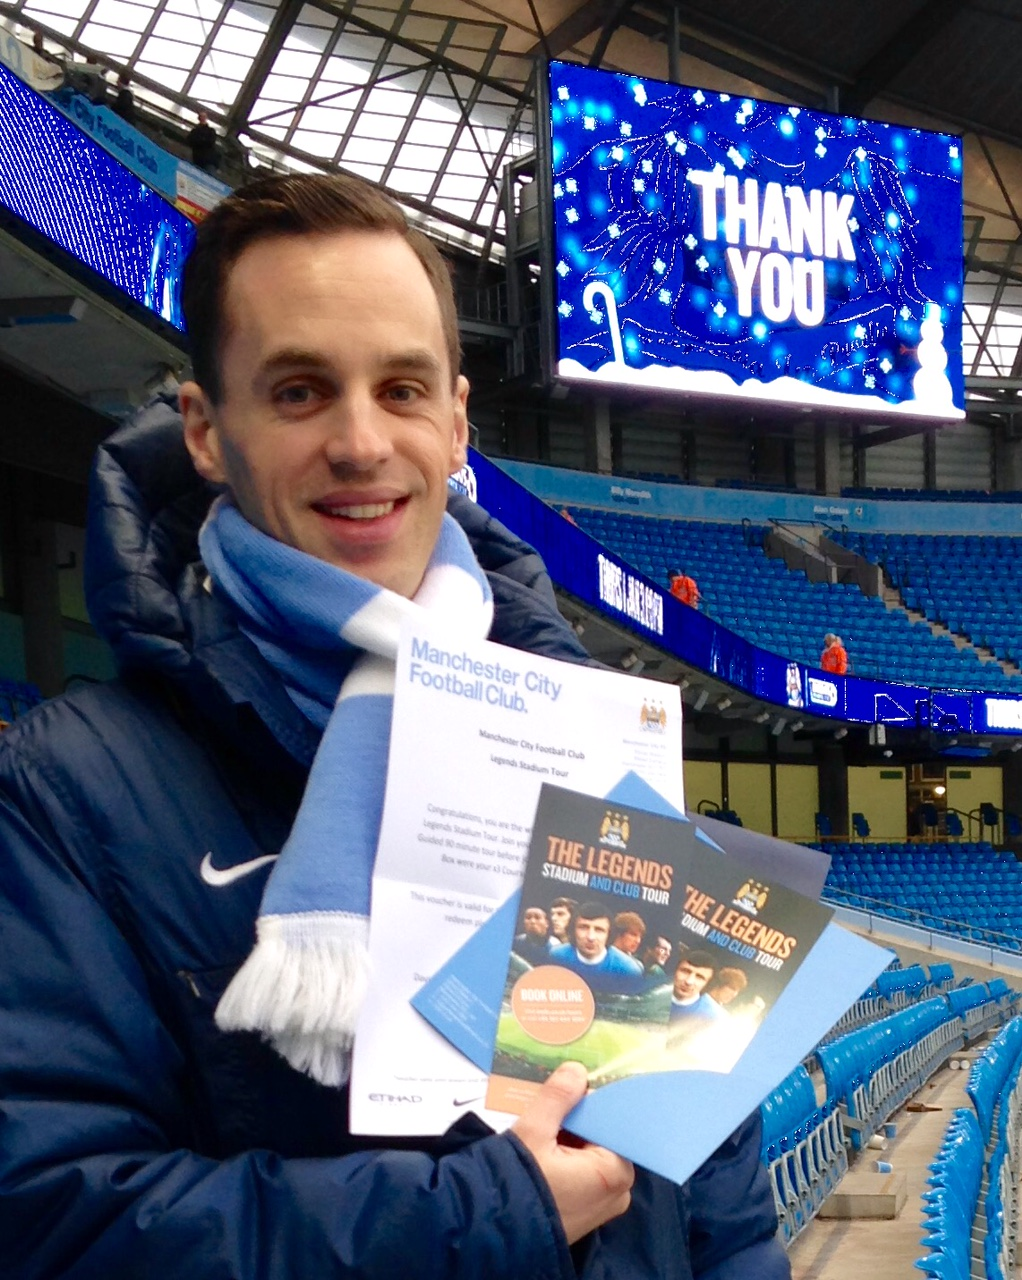 Picking a winner -  Man City Business Executive David Smith pulled the winner's name out of the lucky dip draw.